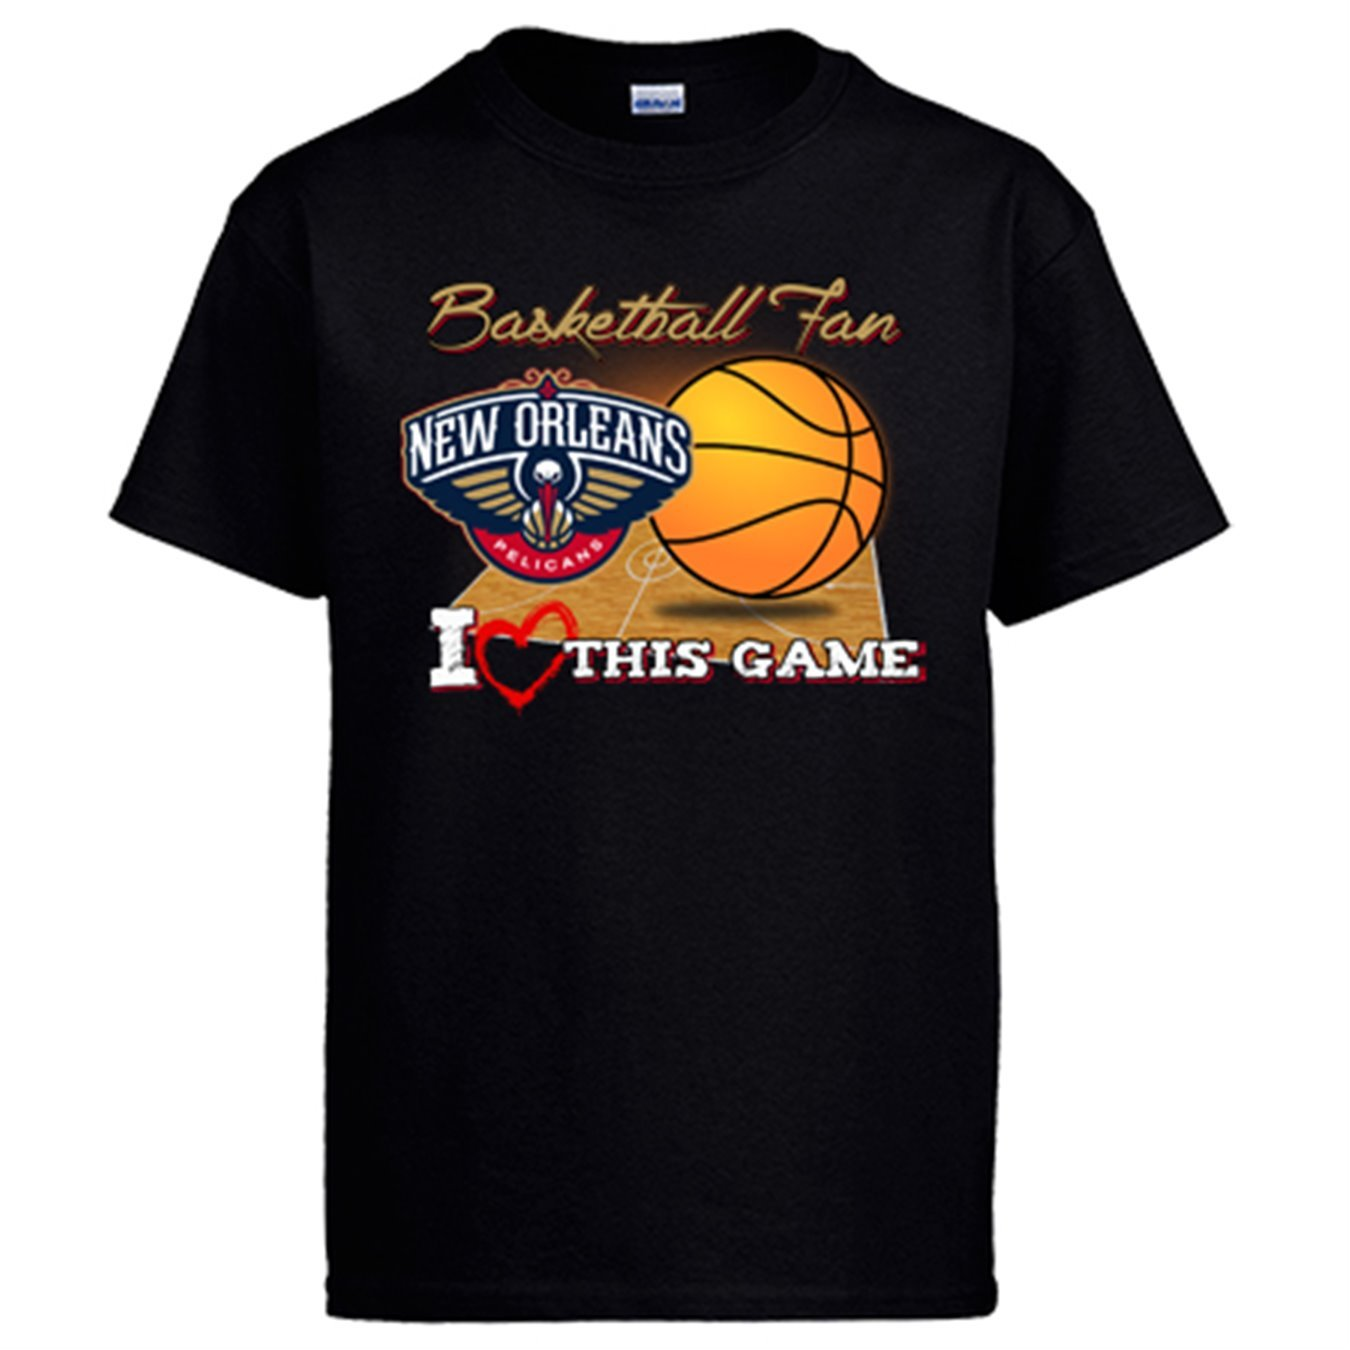 Camiseta NBA New Orleans Pelicans Baloncesto Basketball Fan I Love This Game: Amazon.es: Ropa y accesorios